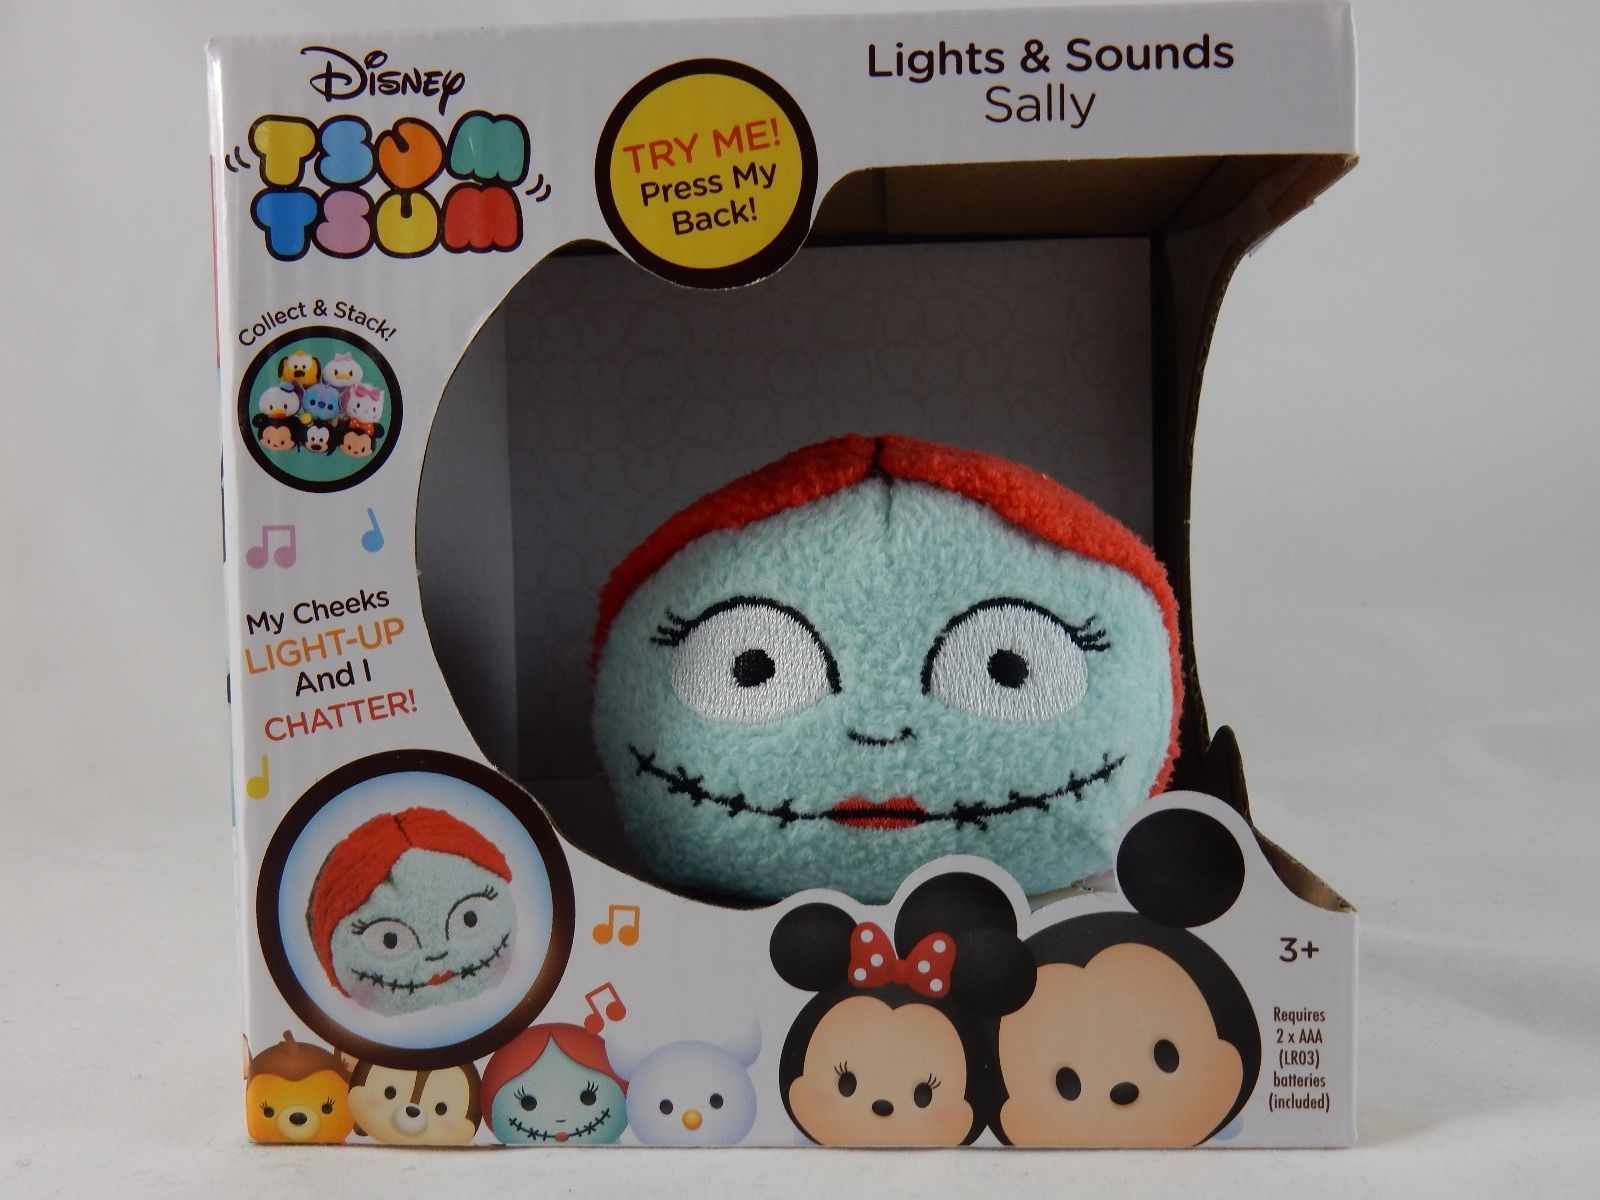 Disney Tsum Tsum Nightmare Before Christmas and similar items